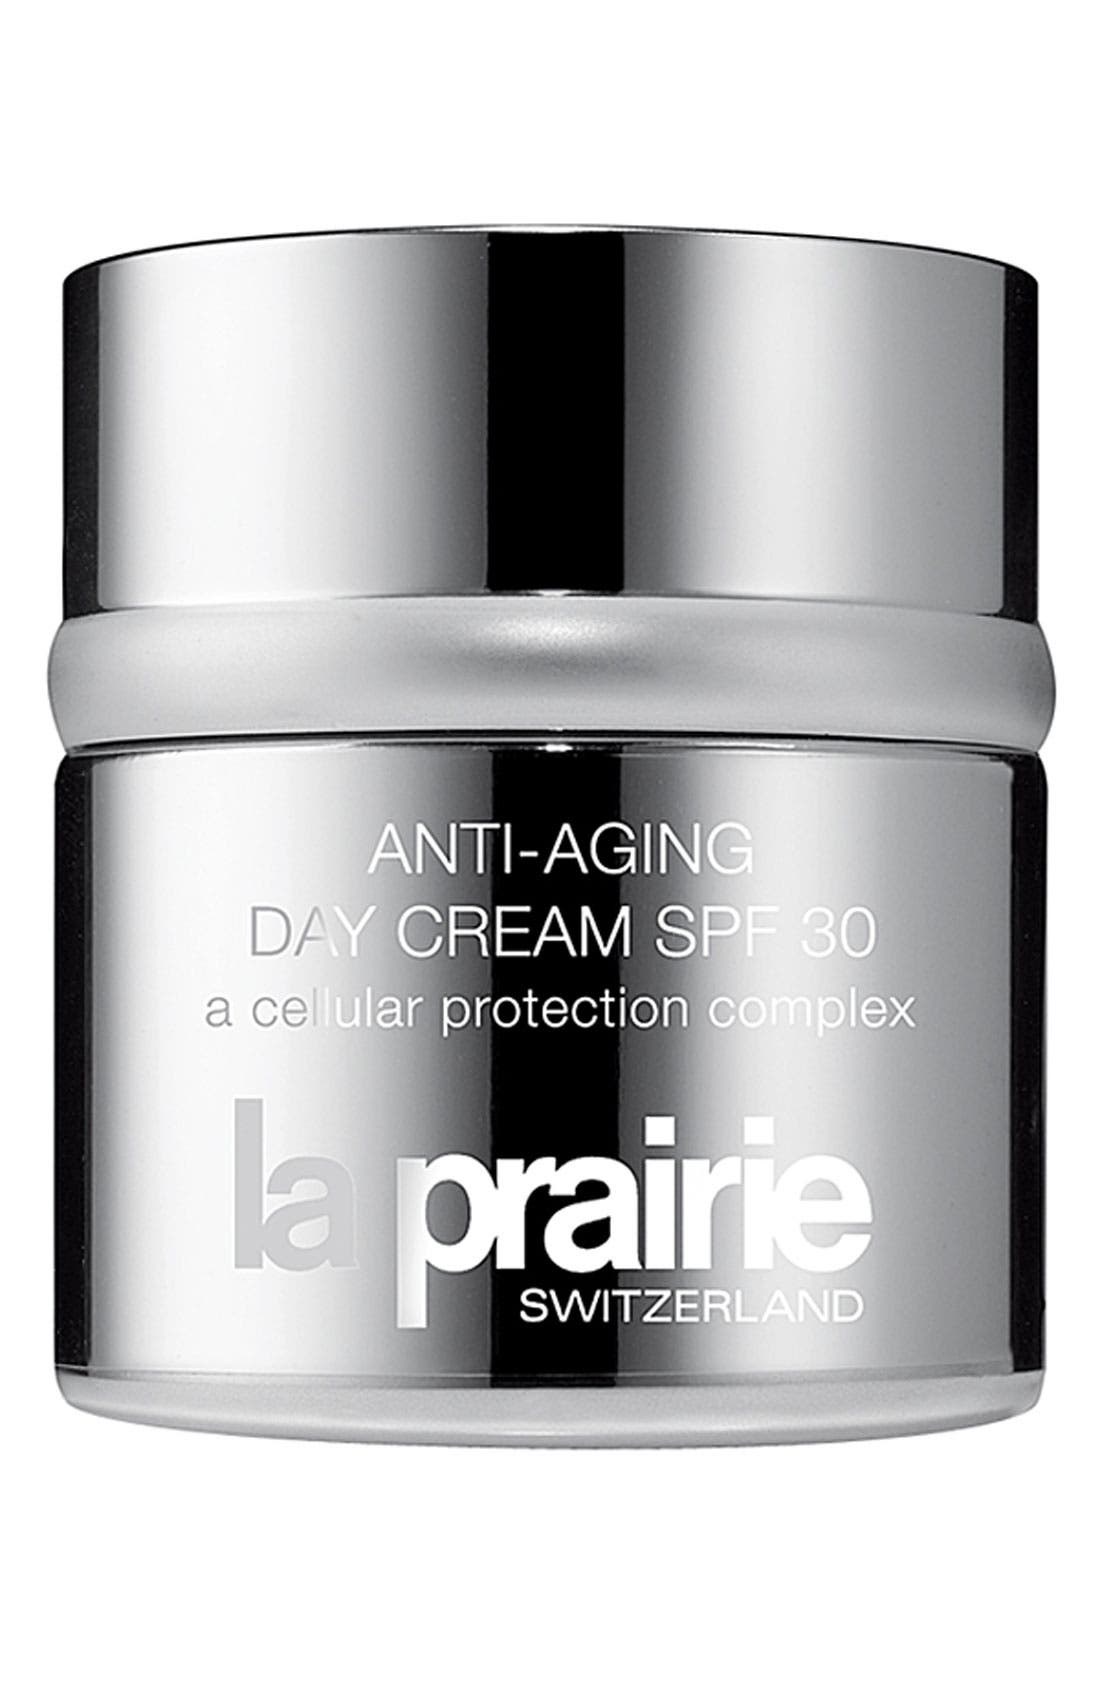 Anti-Aging Day Cream Sunscreen Broad Spectrum SPF 30,                             Main thumbnail 1, color,                             NO COLOR